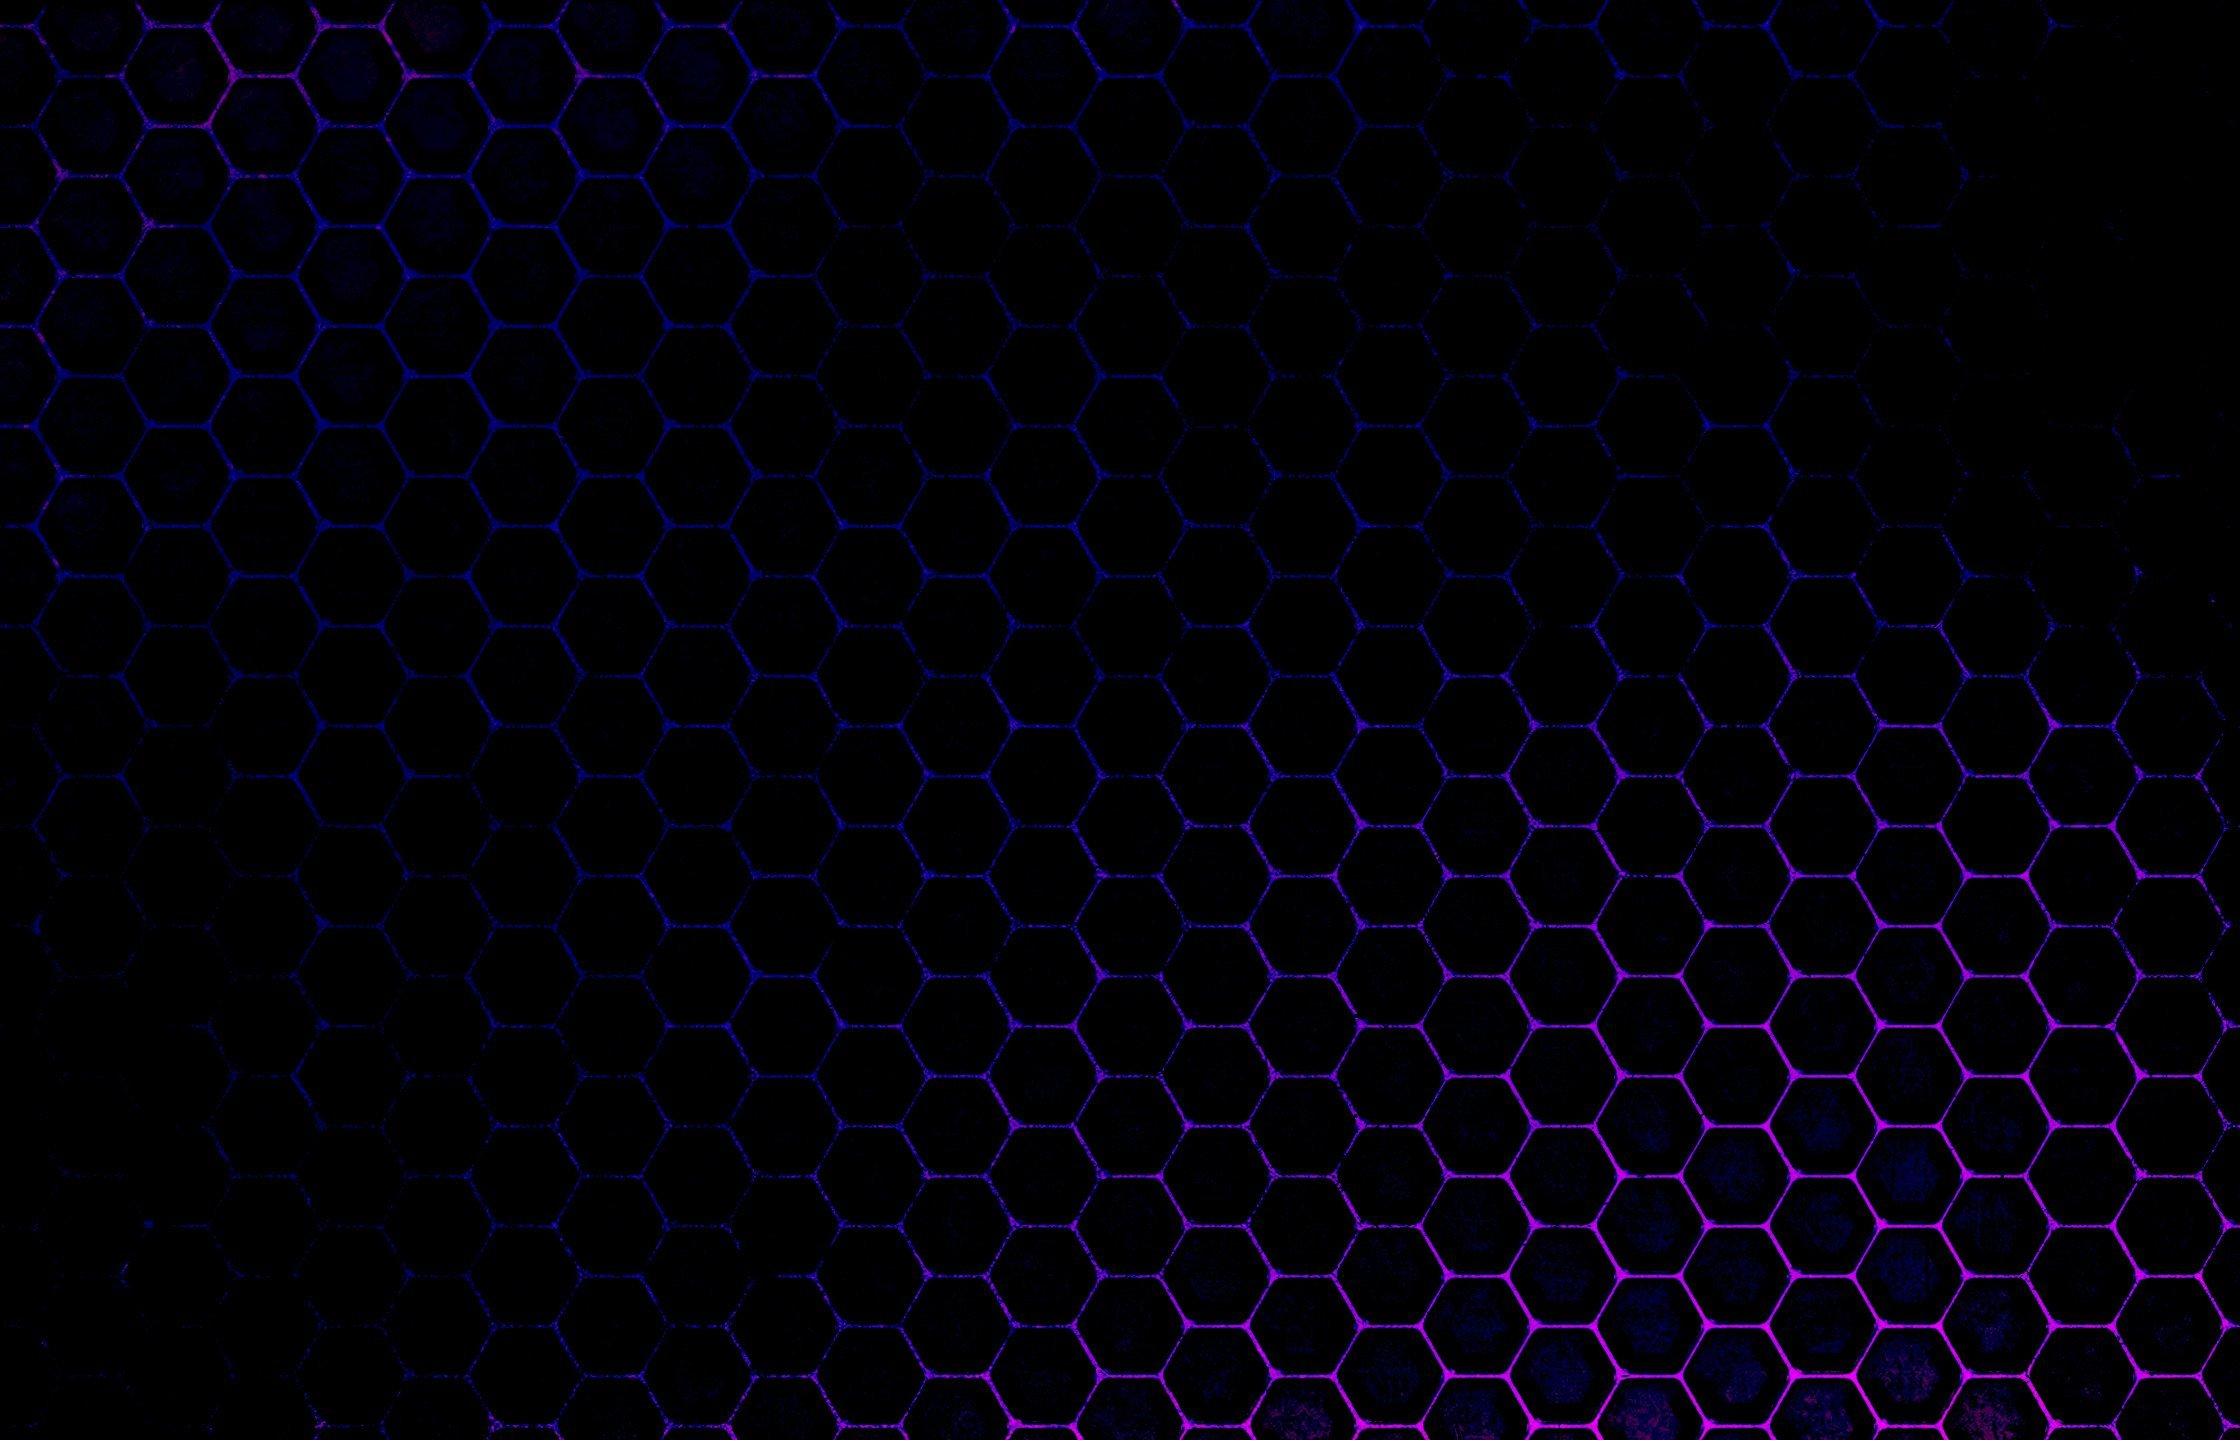 Black Wallpaper Screensaver HD